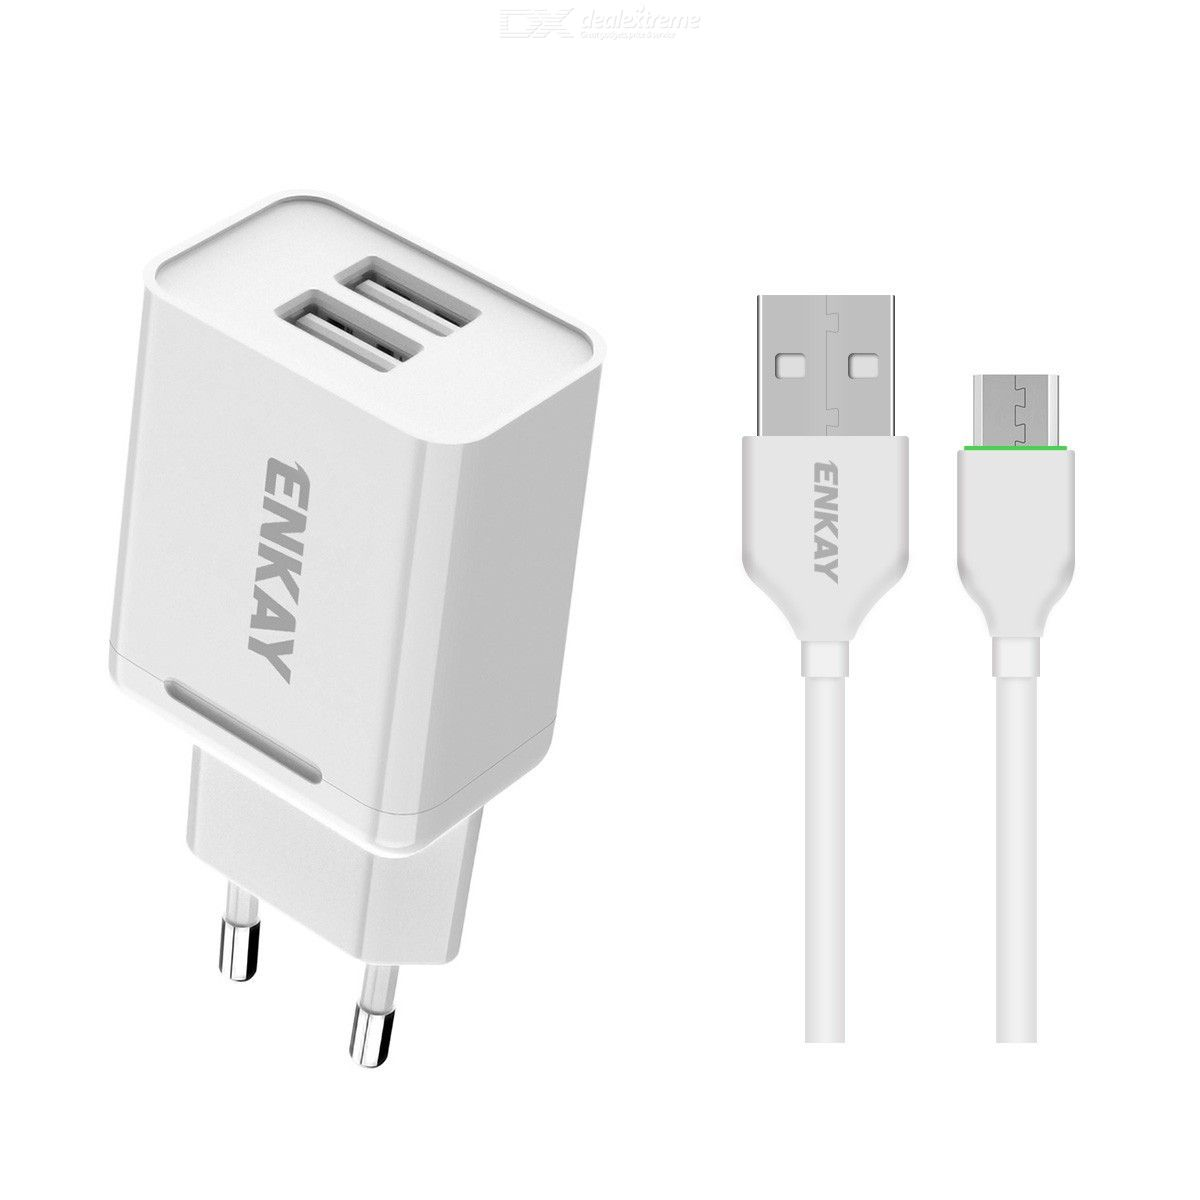 Hat-prince enkay 10.5w 2.1a adaptive charging eu plug dual usb travel power adapter with type-c cable